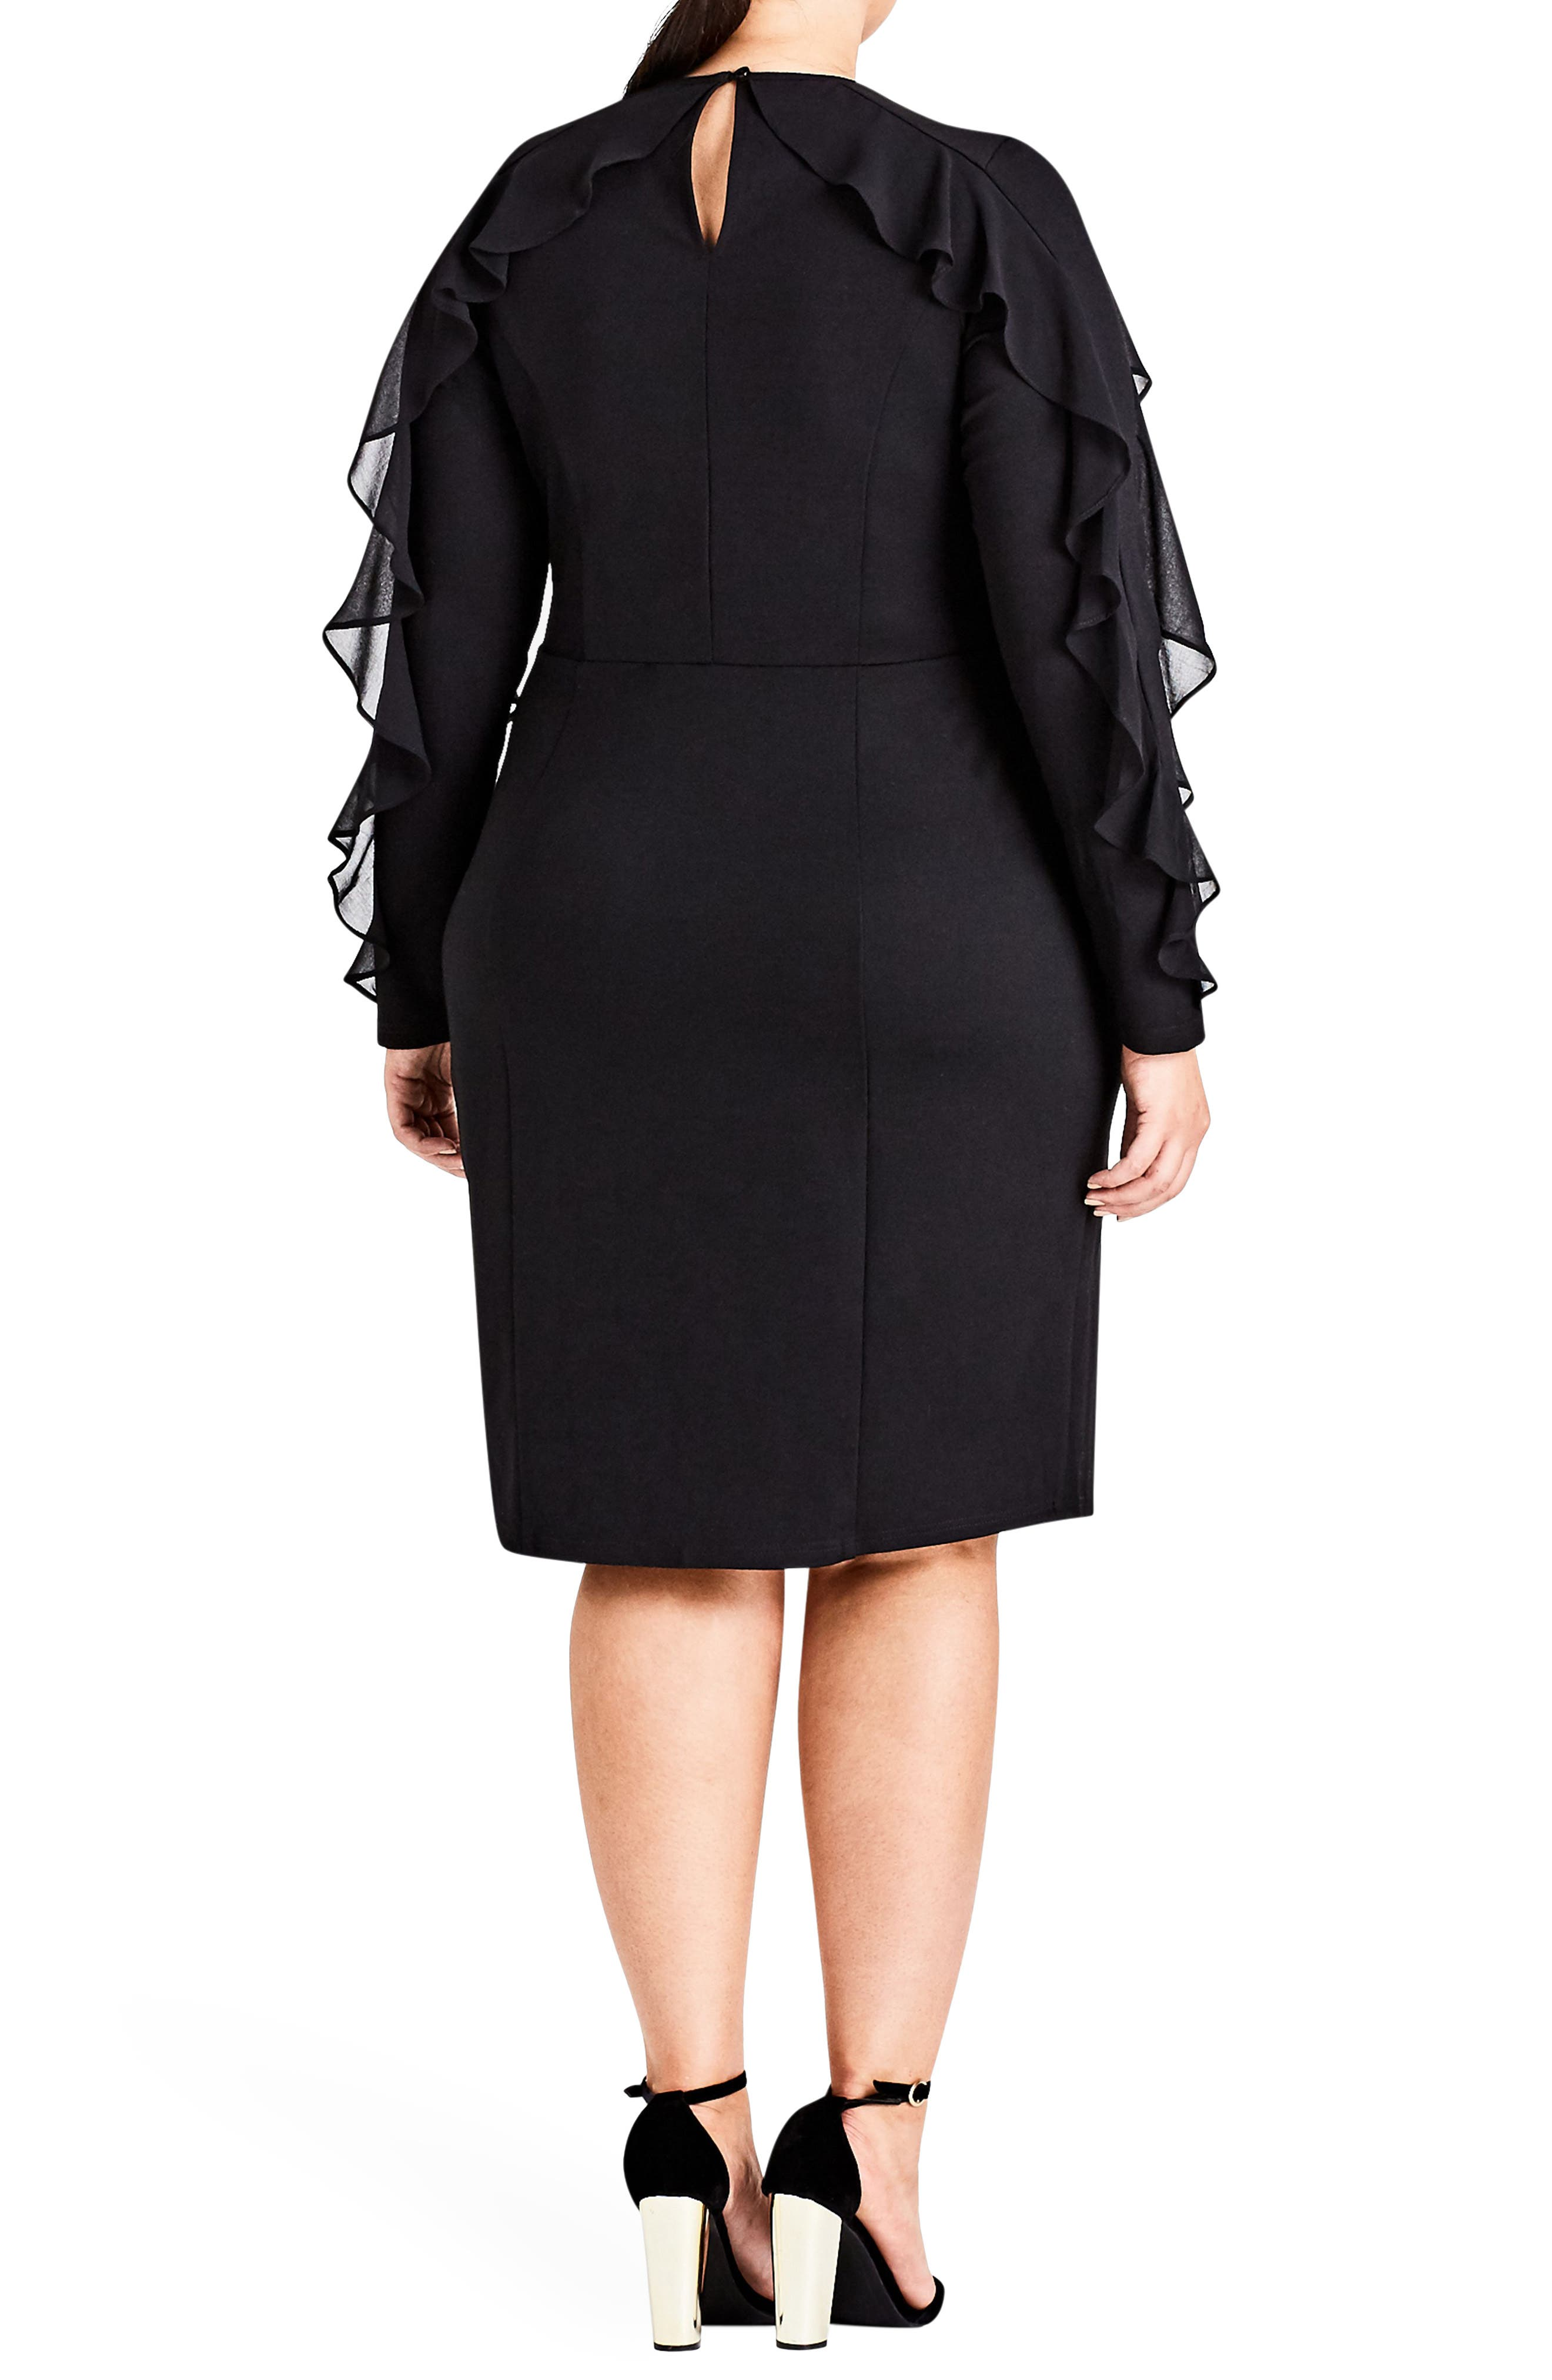 Chic City Romantic Sleeve Sheath Dress,                             Alternate thumbnail 2, color,                             Black